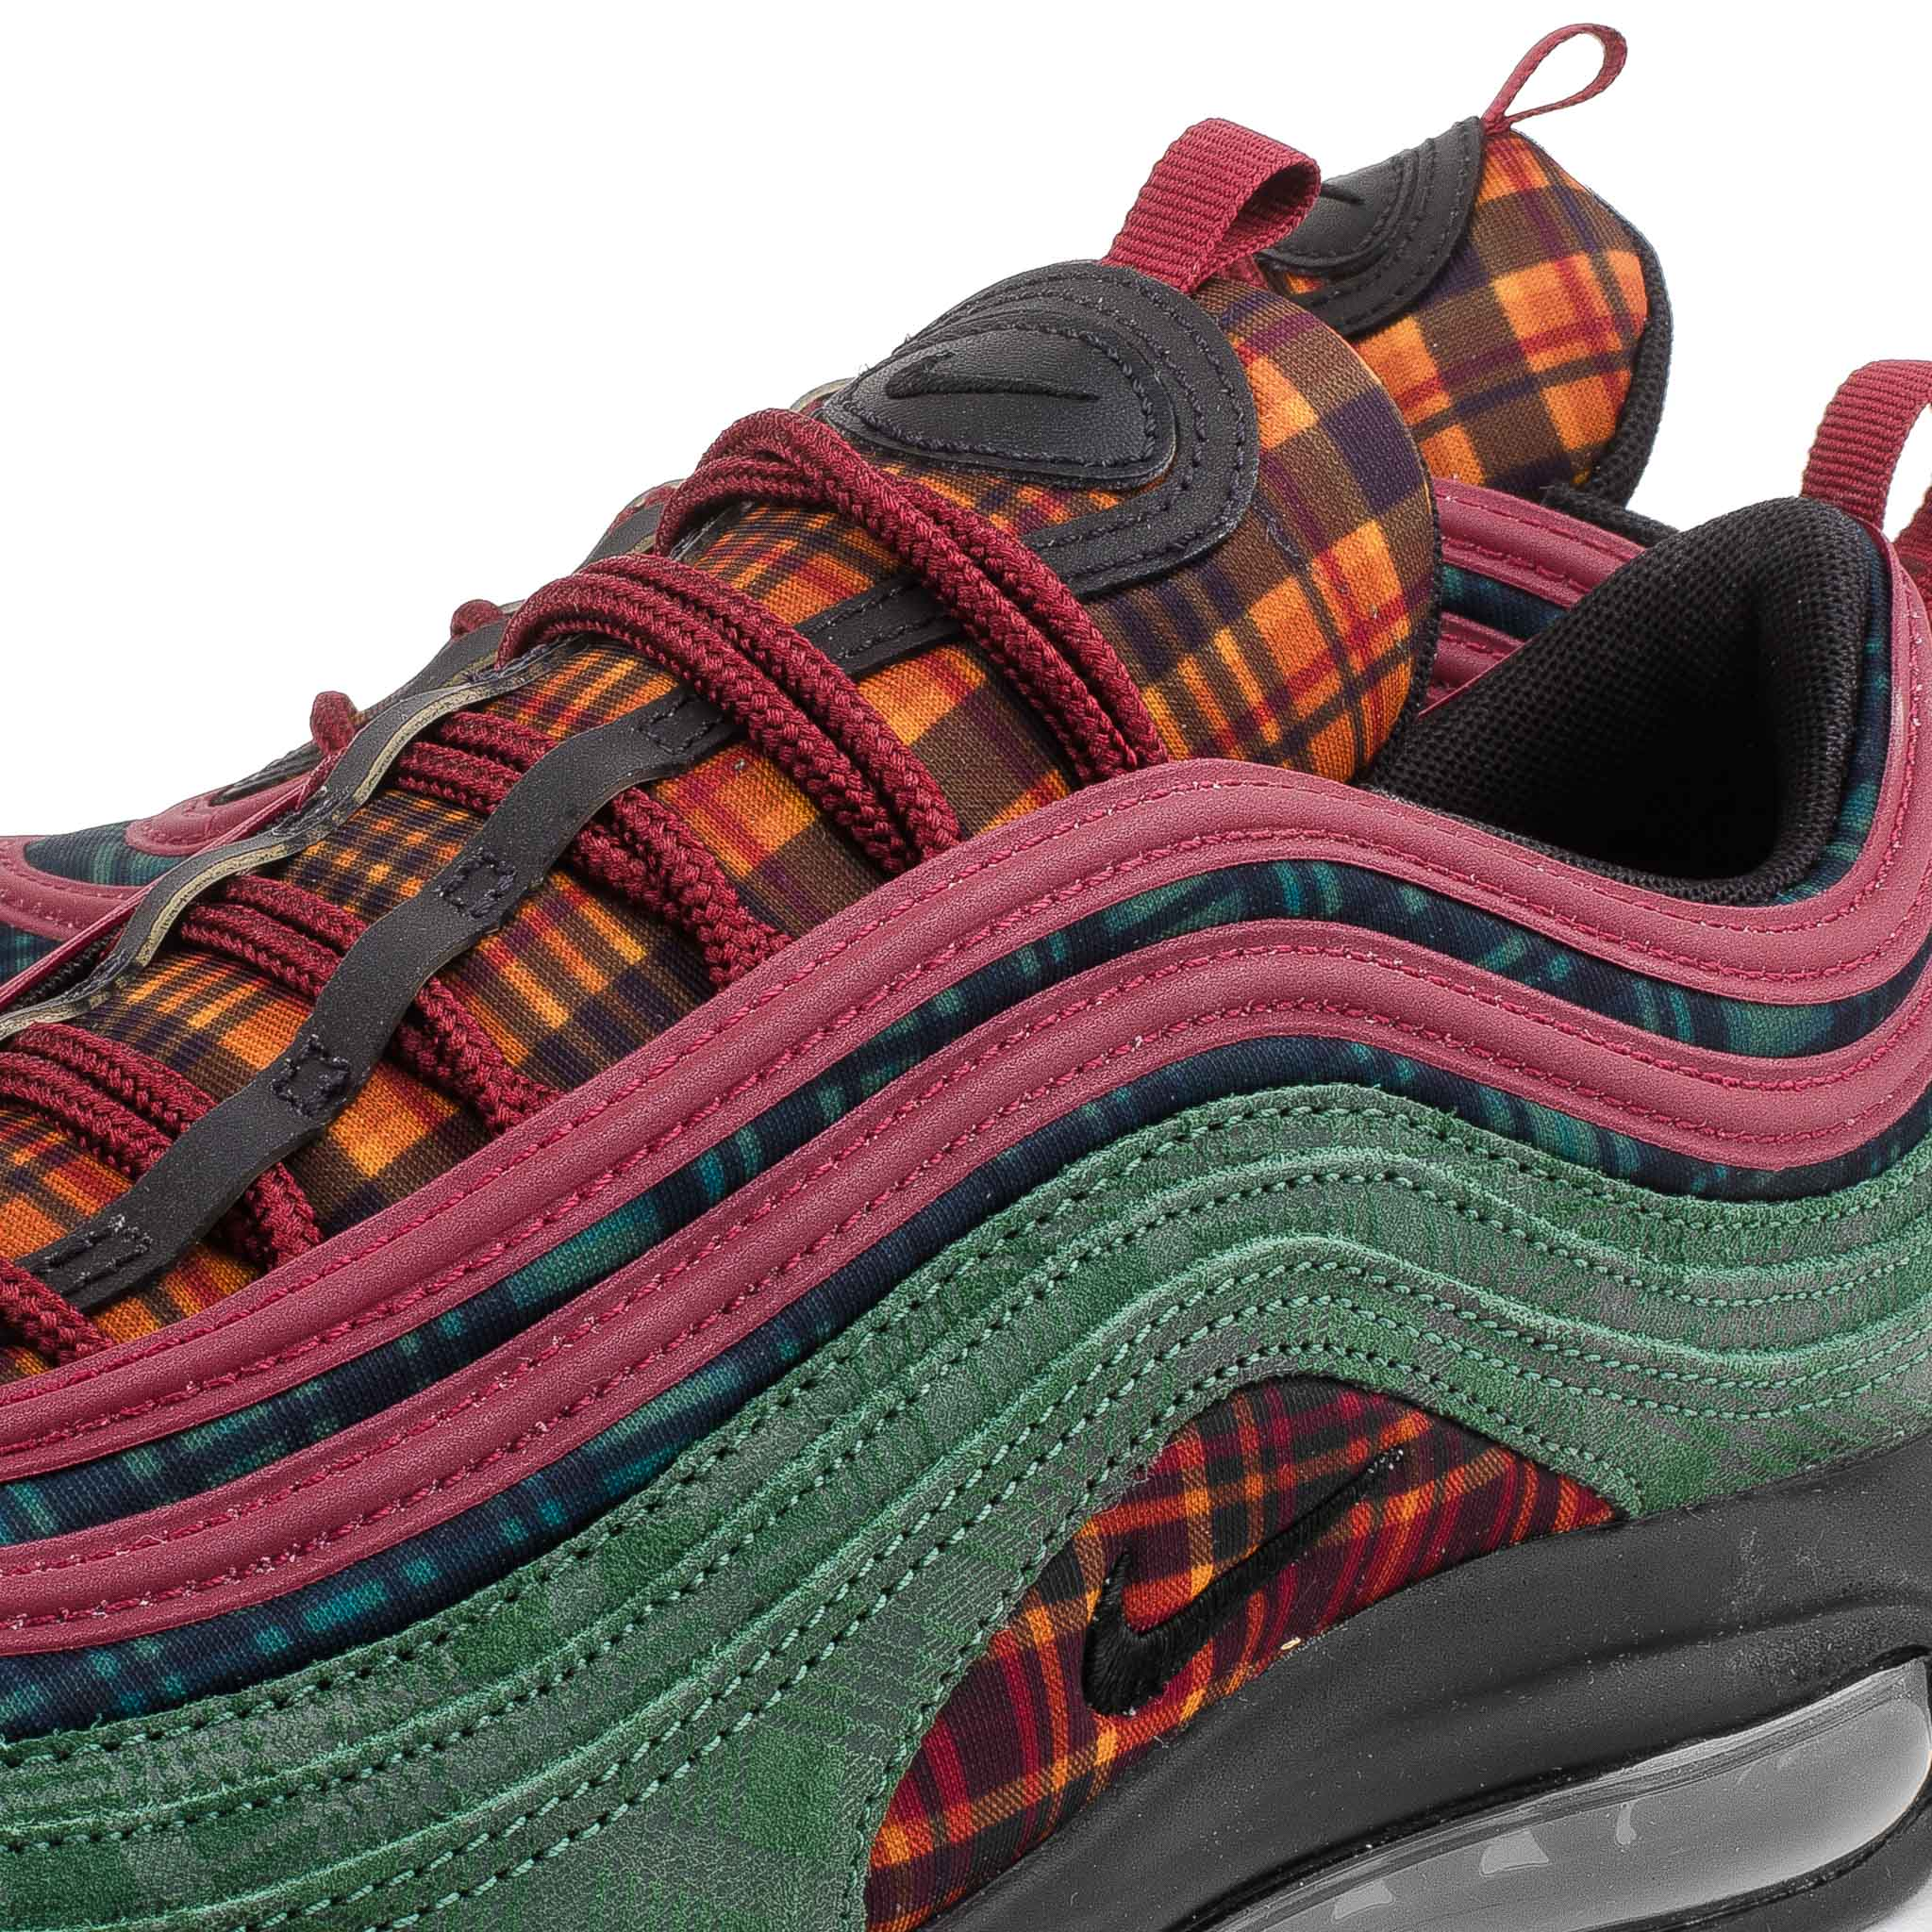 Air Max 97 NRG AT6145-600 Green